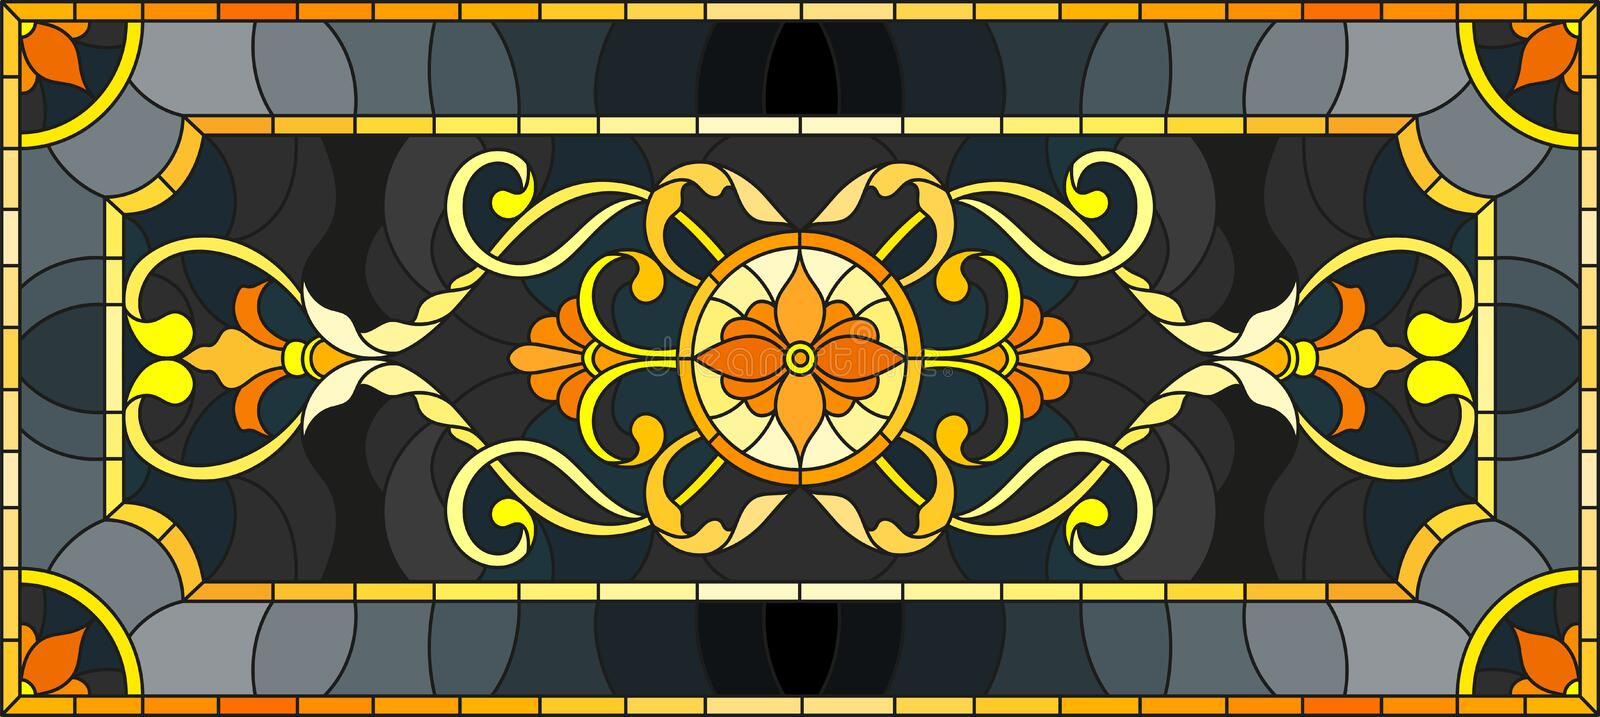 Stained glass illustration with floral ornament ,imitation gold on dark background with swirls and floral motifs stock illustration